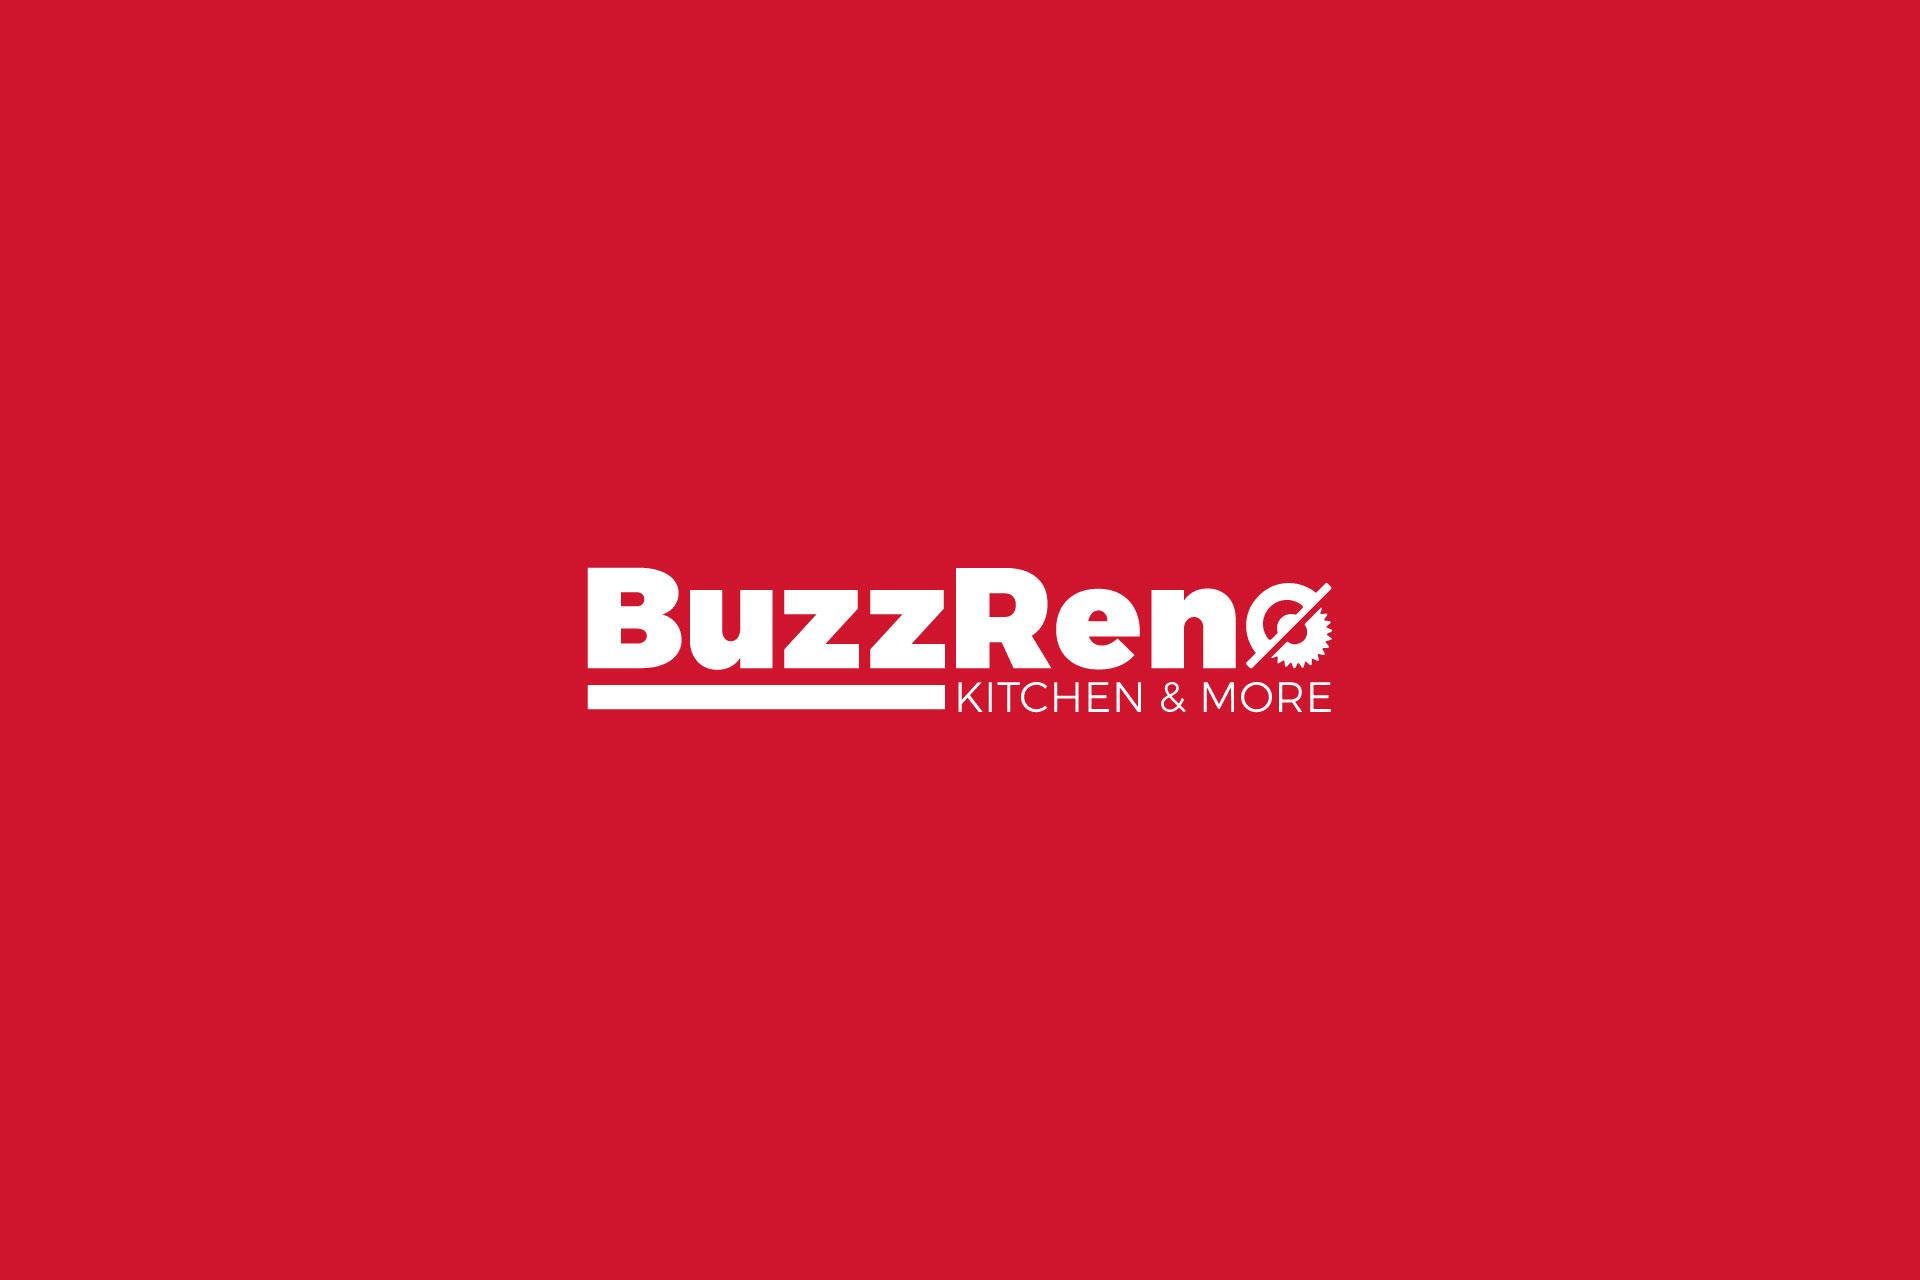 BuzzReno construction company branding by Z Creative Studio Branding & Graphic Design Melbourne